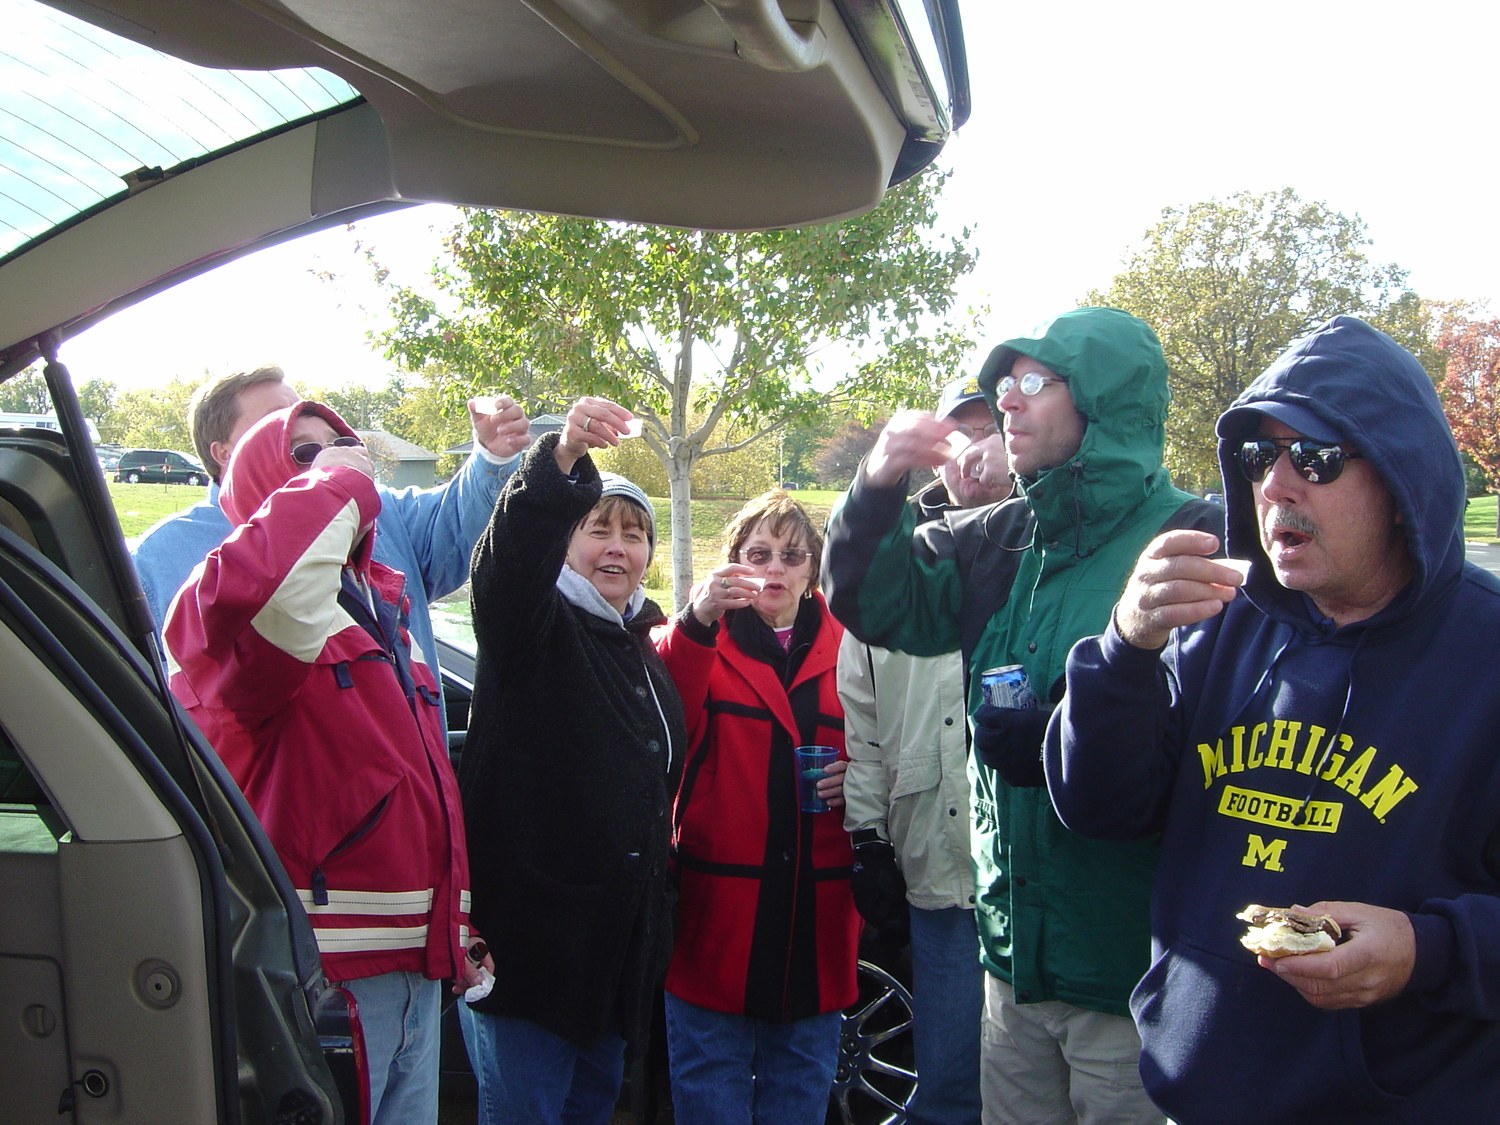 October 16, 2004: Road shooters before Michigan's 30-19 victory over the Illini